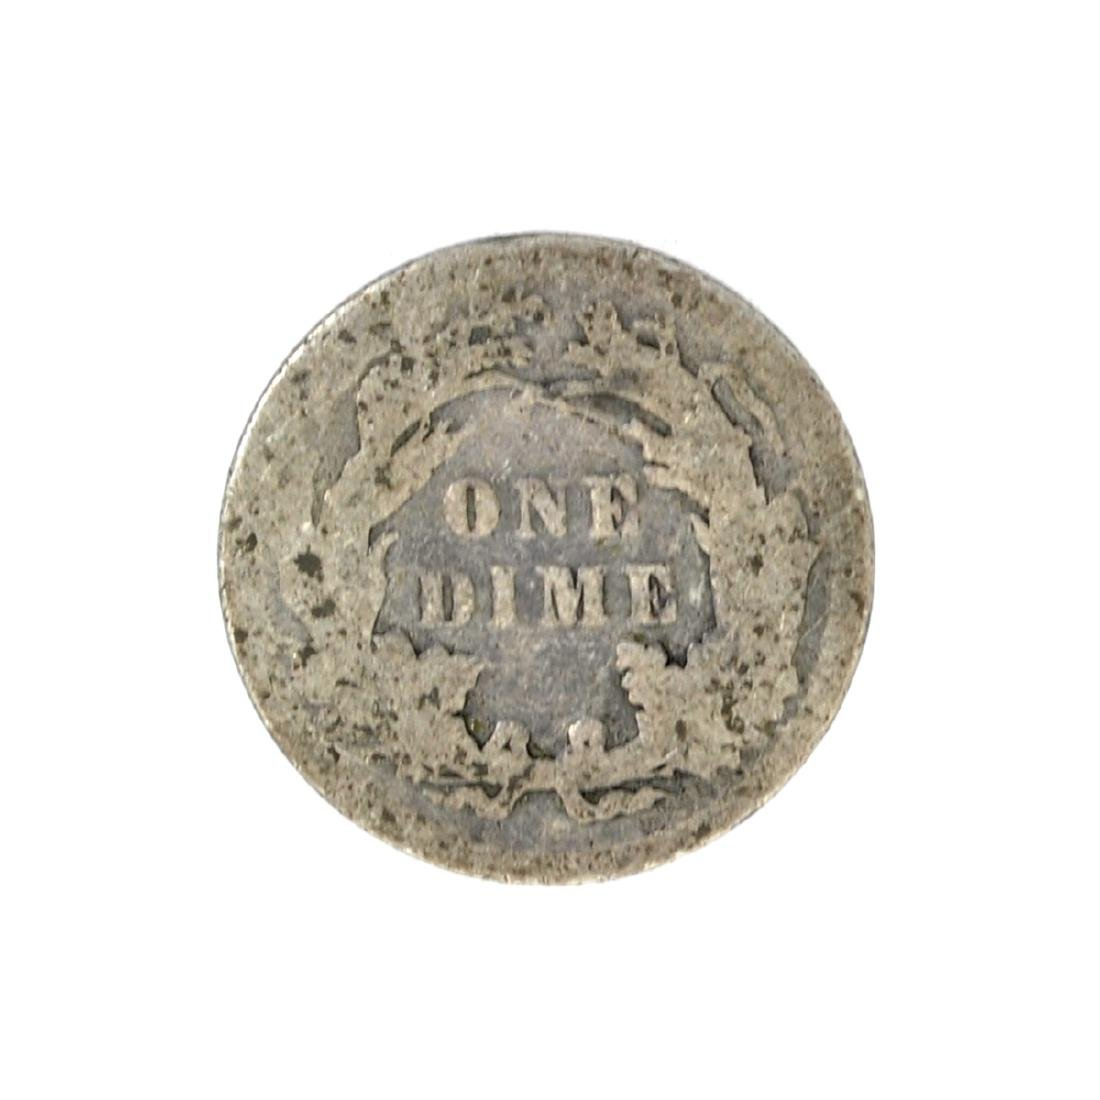 1890 Liberty Seated Dime Coin - 2